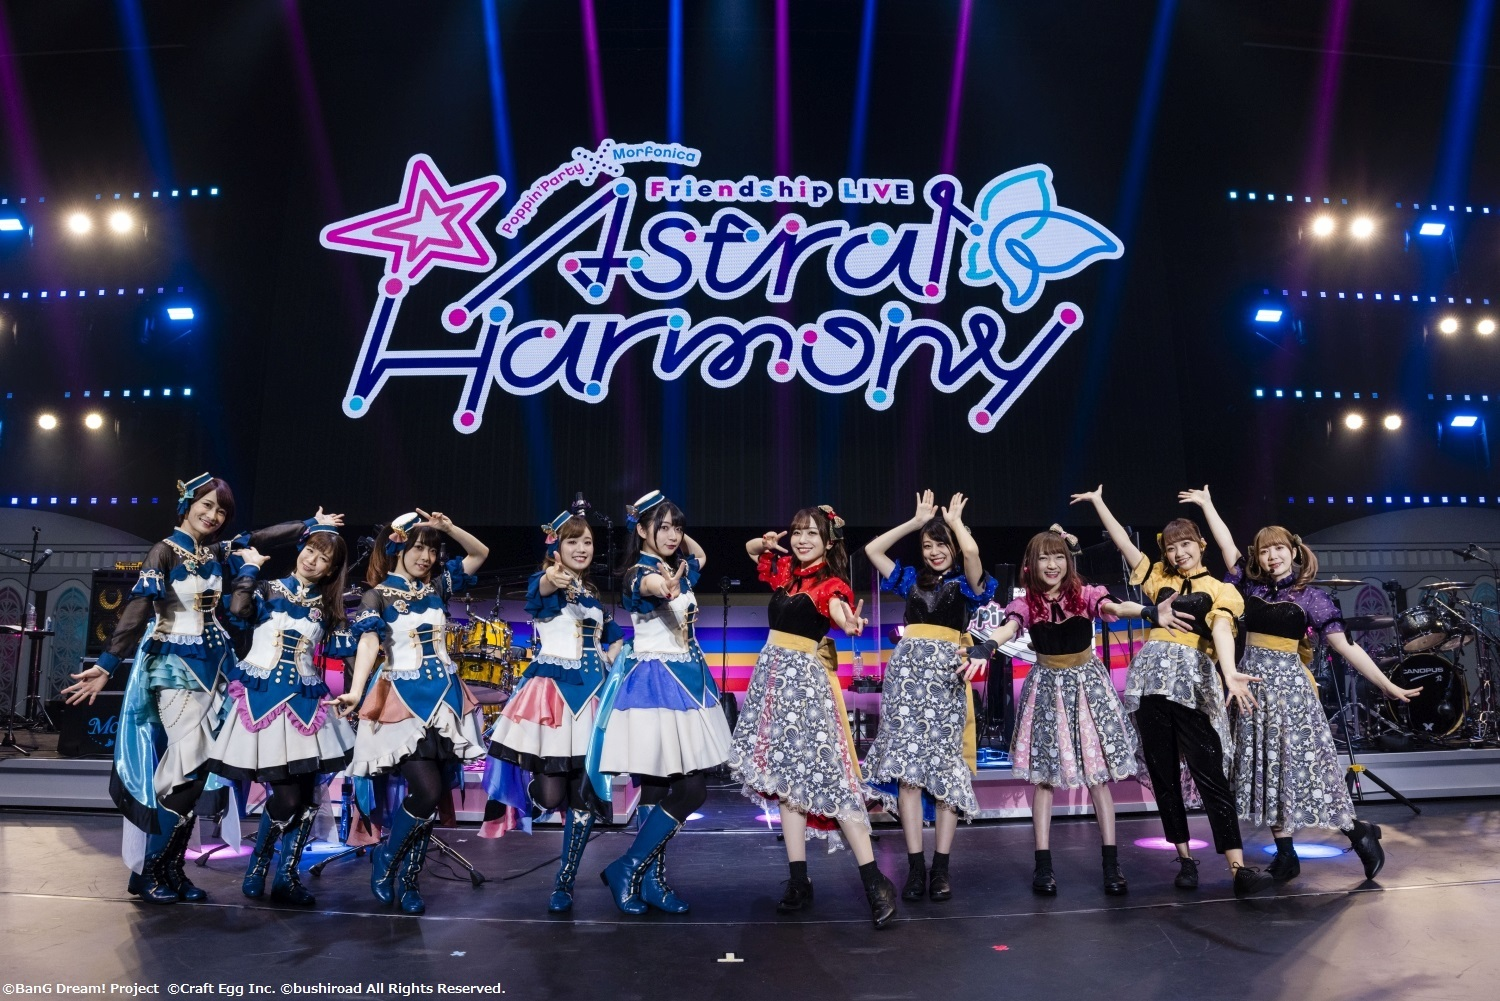 Poppin'Party×Morfonica Friendship LIVE『Astral Harmony』集合写真 (c)BanG Dream! Project (c)Craft Egg Inc. (c)bushiroad All Rights Reserved.